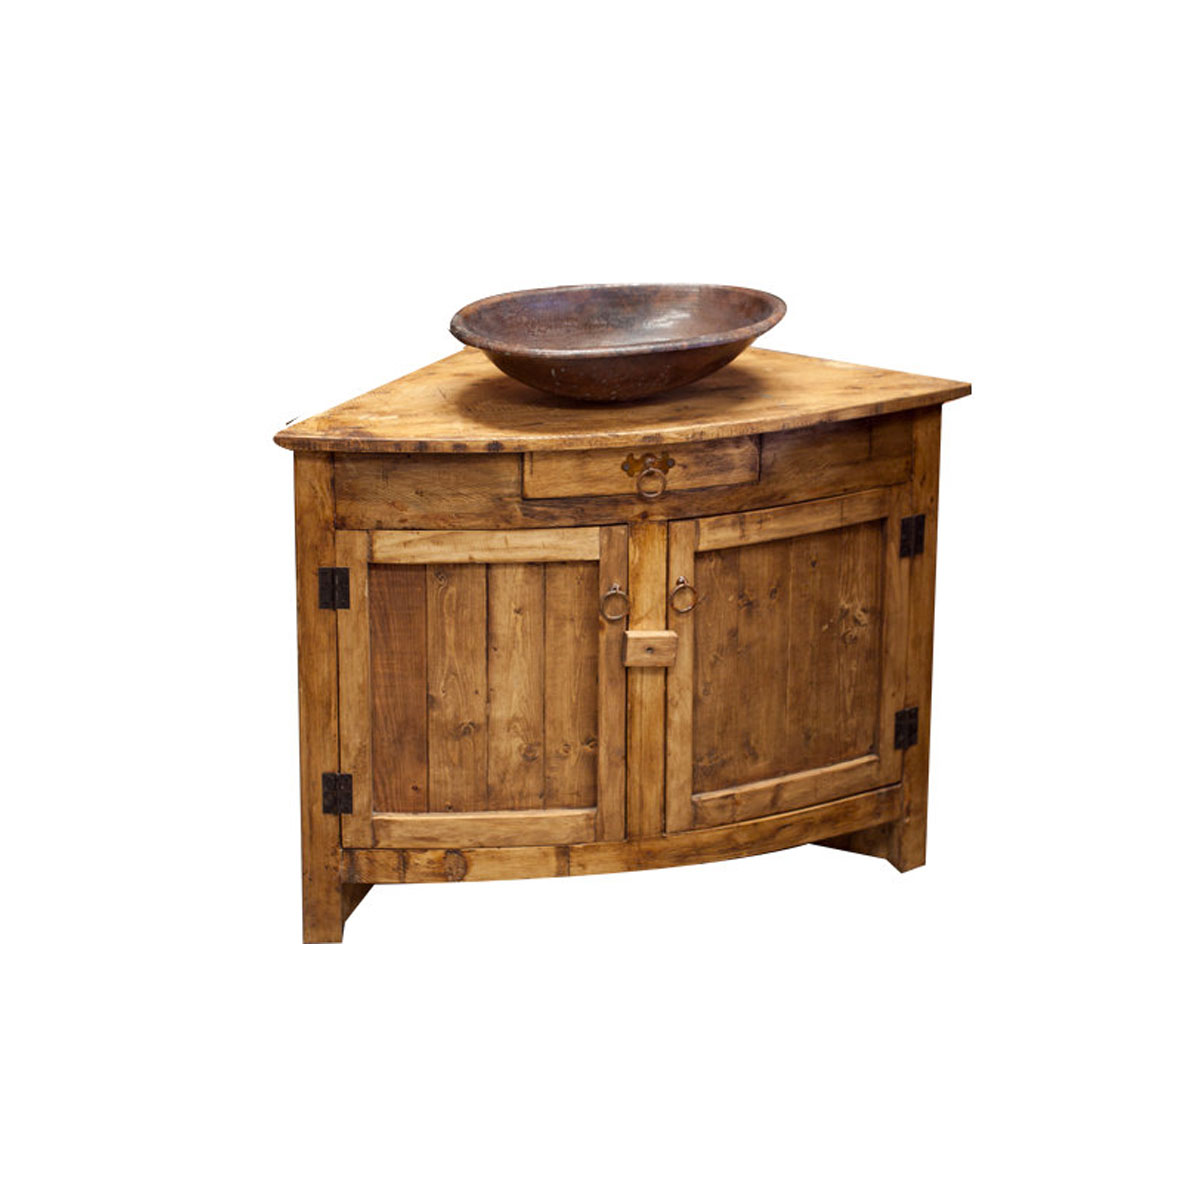 Rustic Corner Bathroom Vanity. rustic corner vanity Buy Rustic Corner Vanity Online  Perfect for Small Bathroom